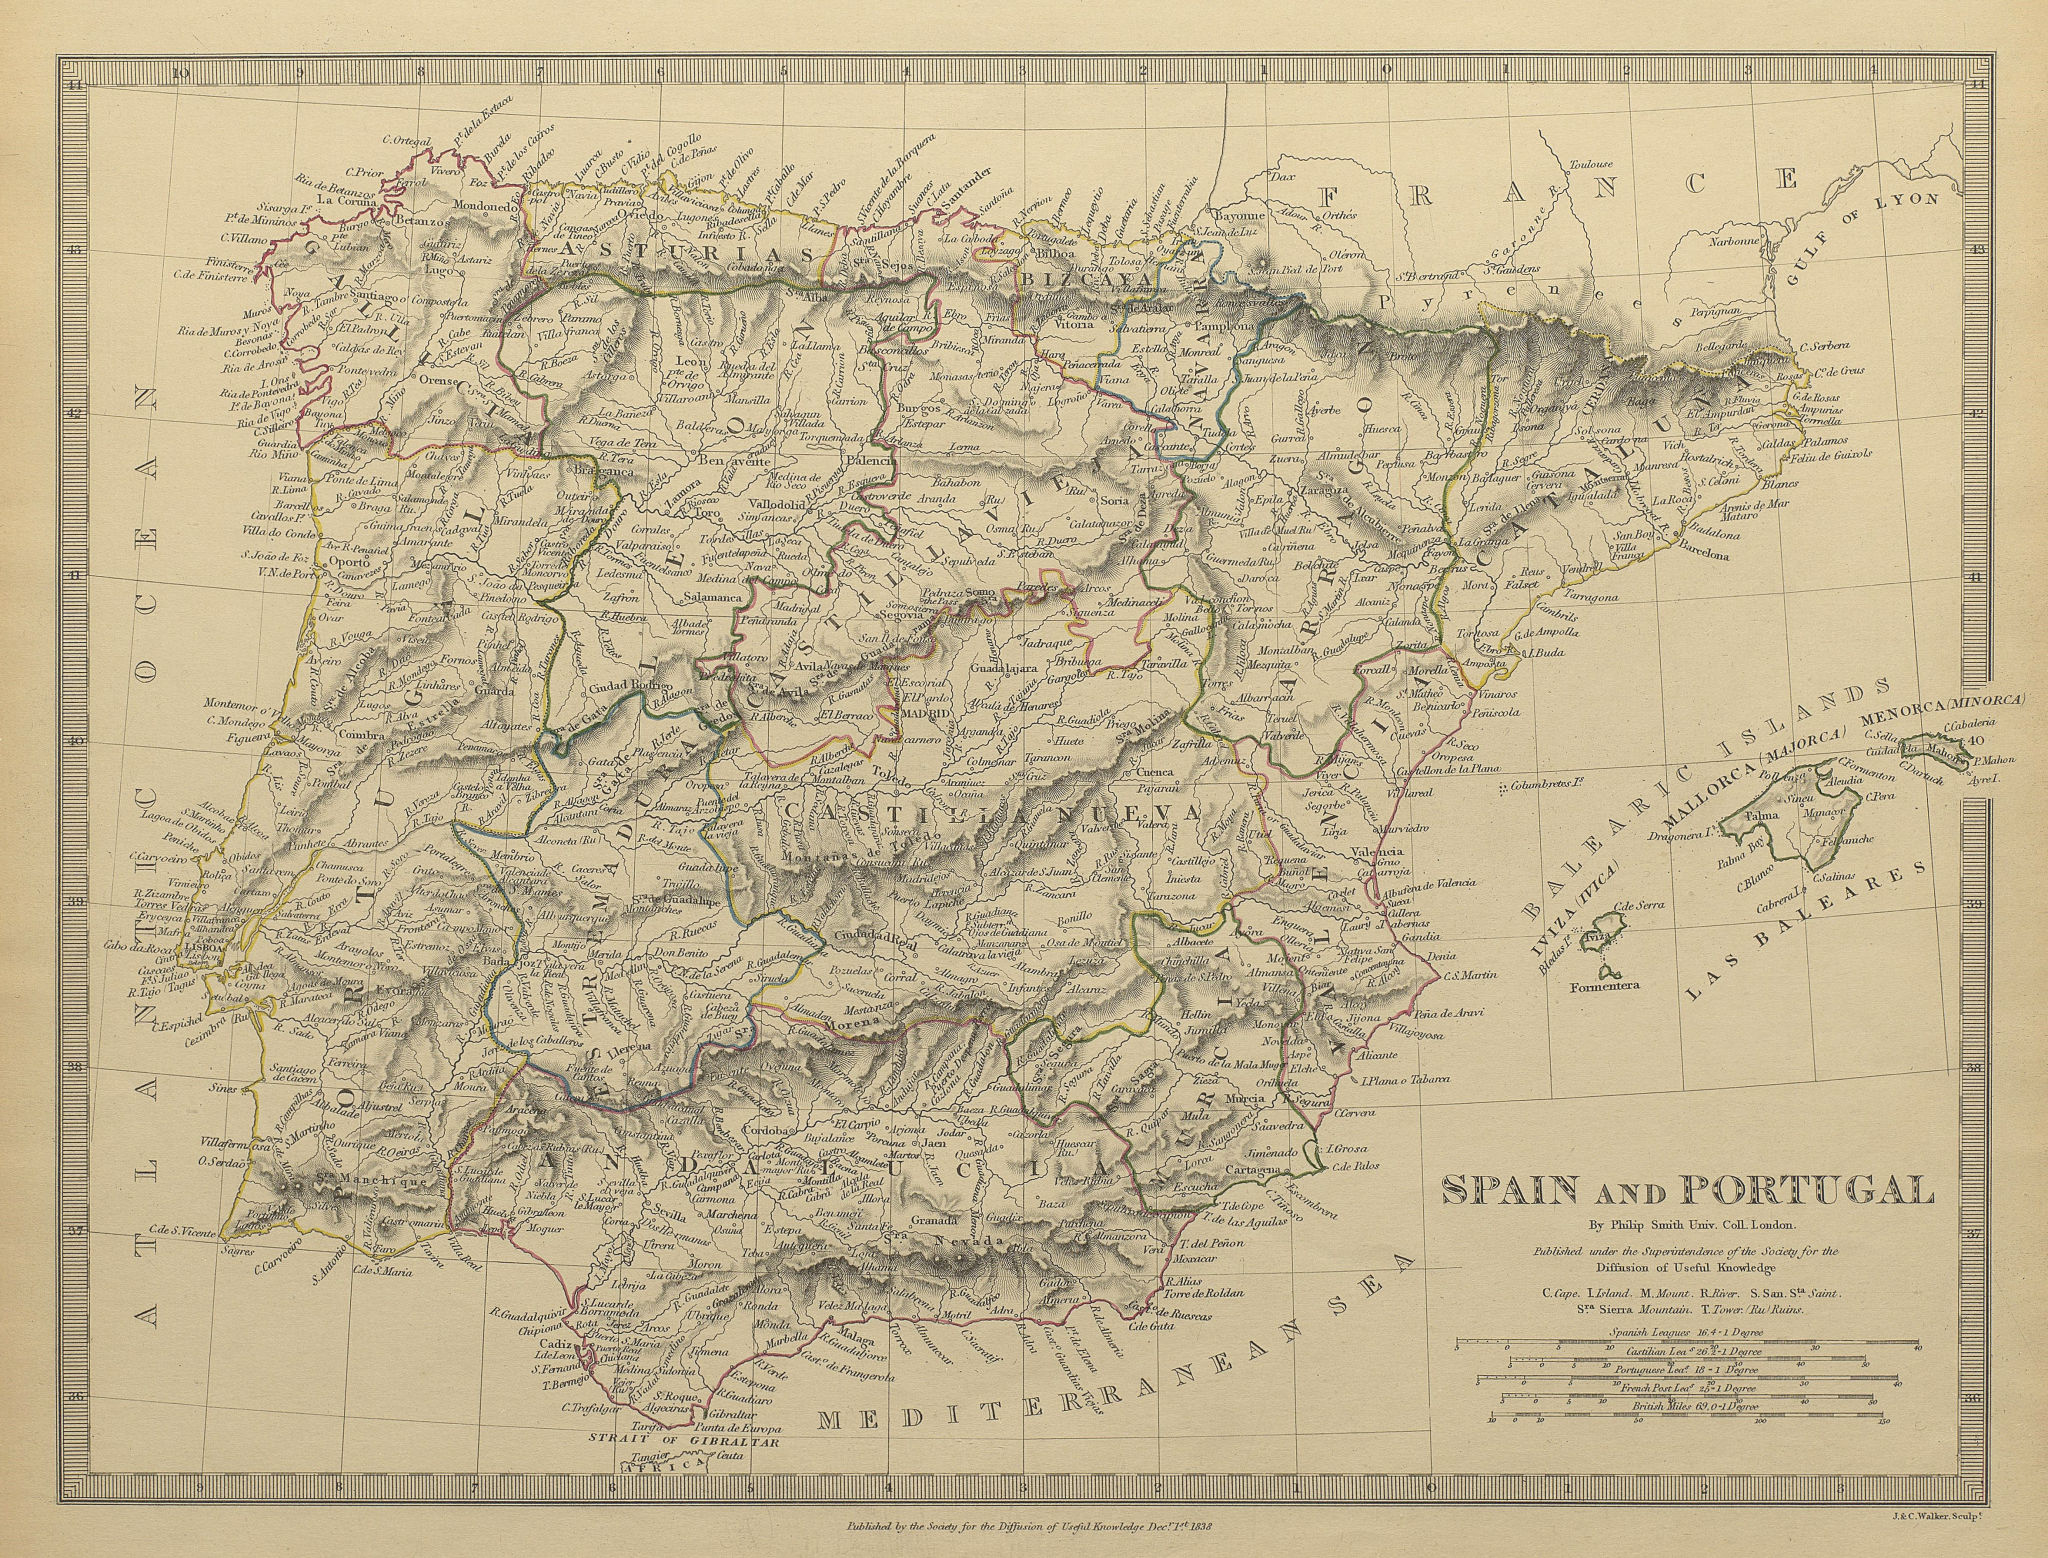 Associate Product IBERIA. Spain and Portugal showing provinces. SDUK 1844 old antique map chart